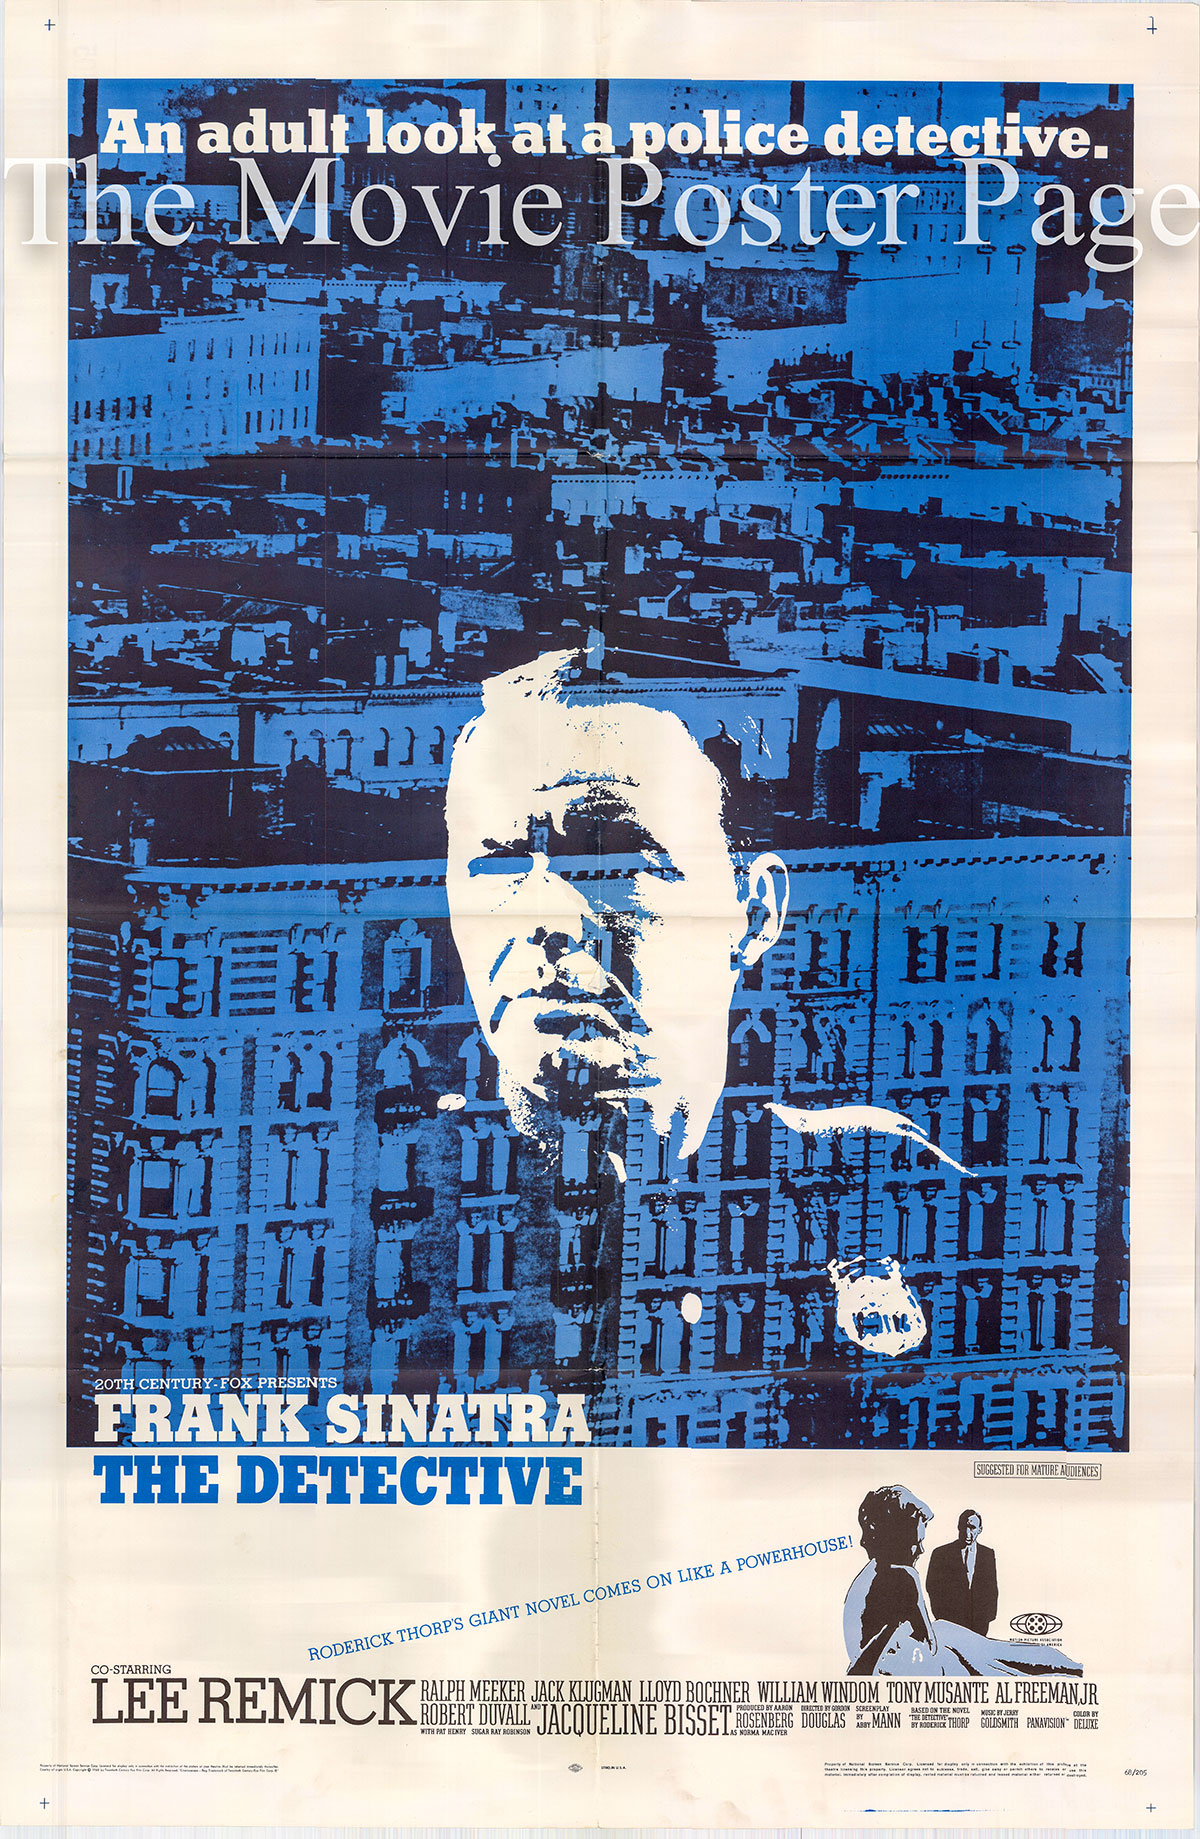 Pictured is a US one-sheet poster for the 1968 Gordon Douglas film The Detective starring Frank Sinatra as Joe Leland.